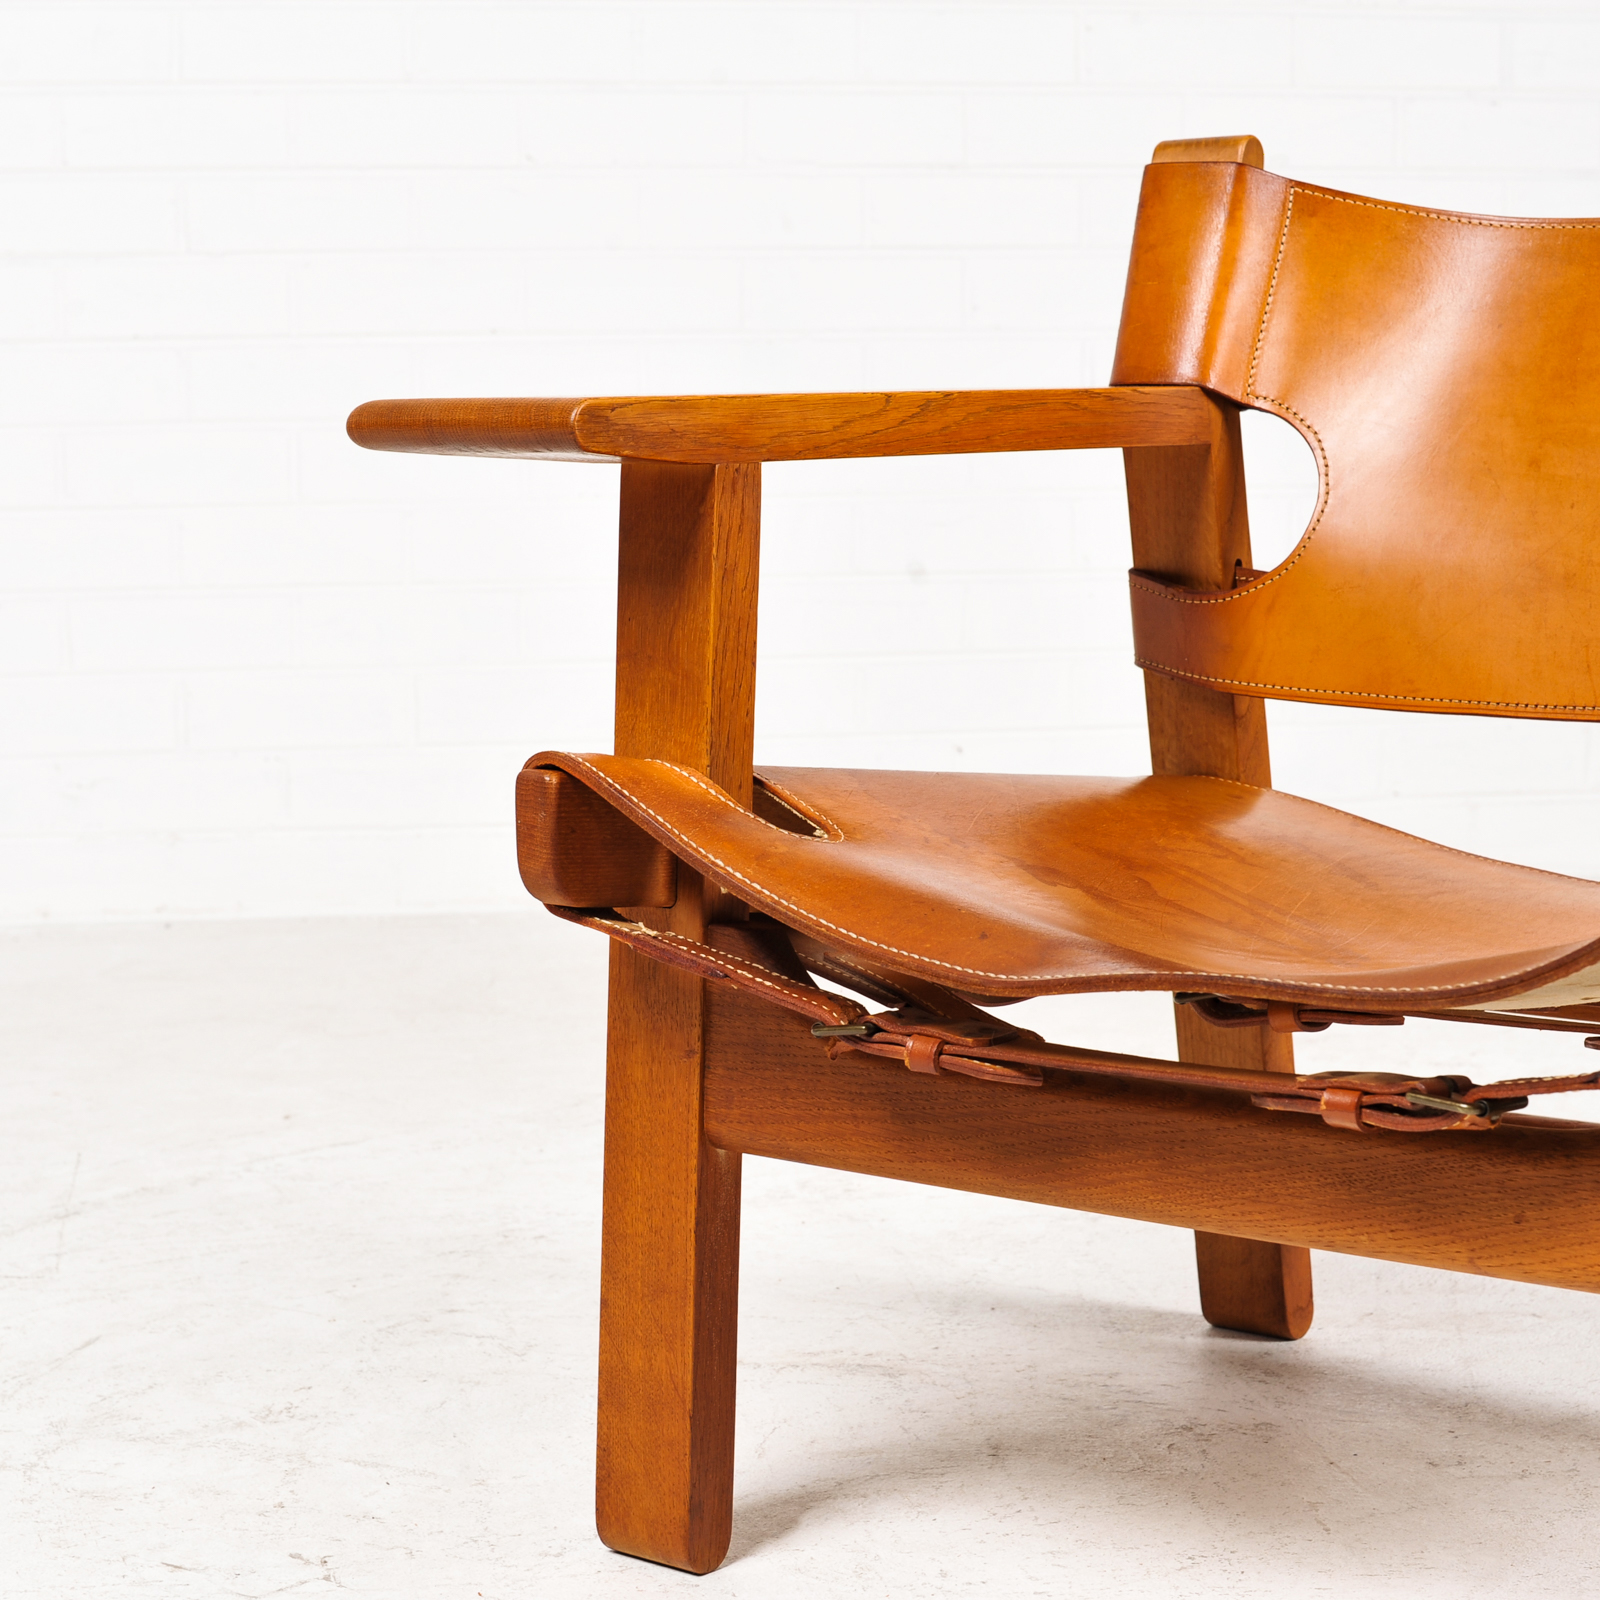 Spanish Chair by Borge Mogensen for Fredericia in Tan Leather, 1950s, Denmark 02